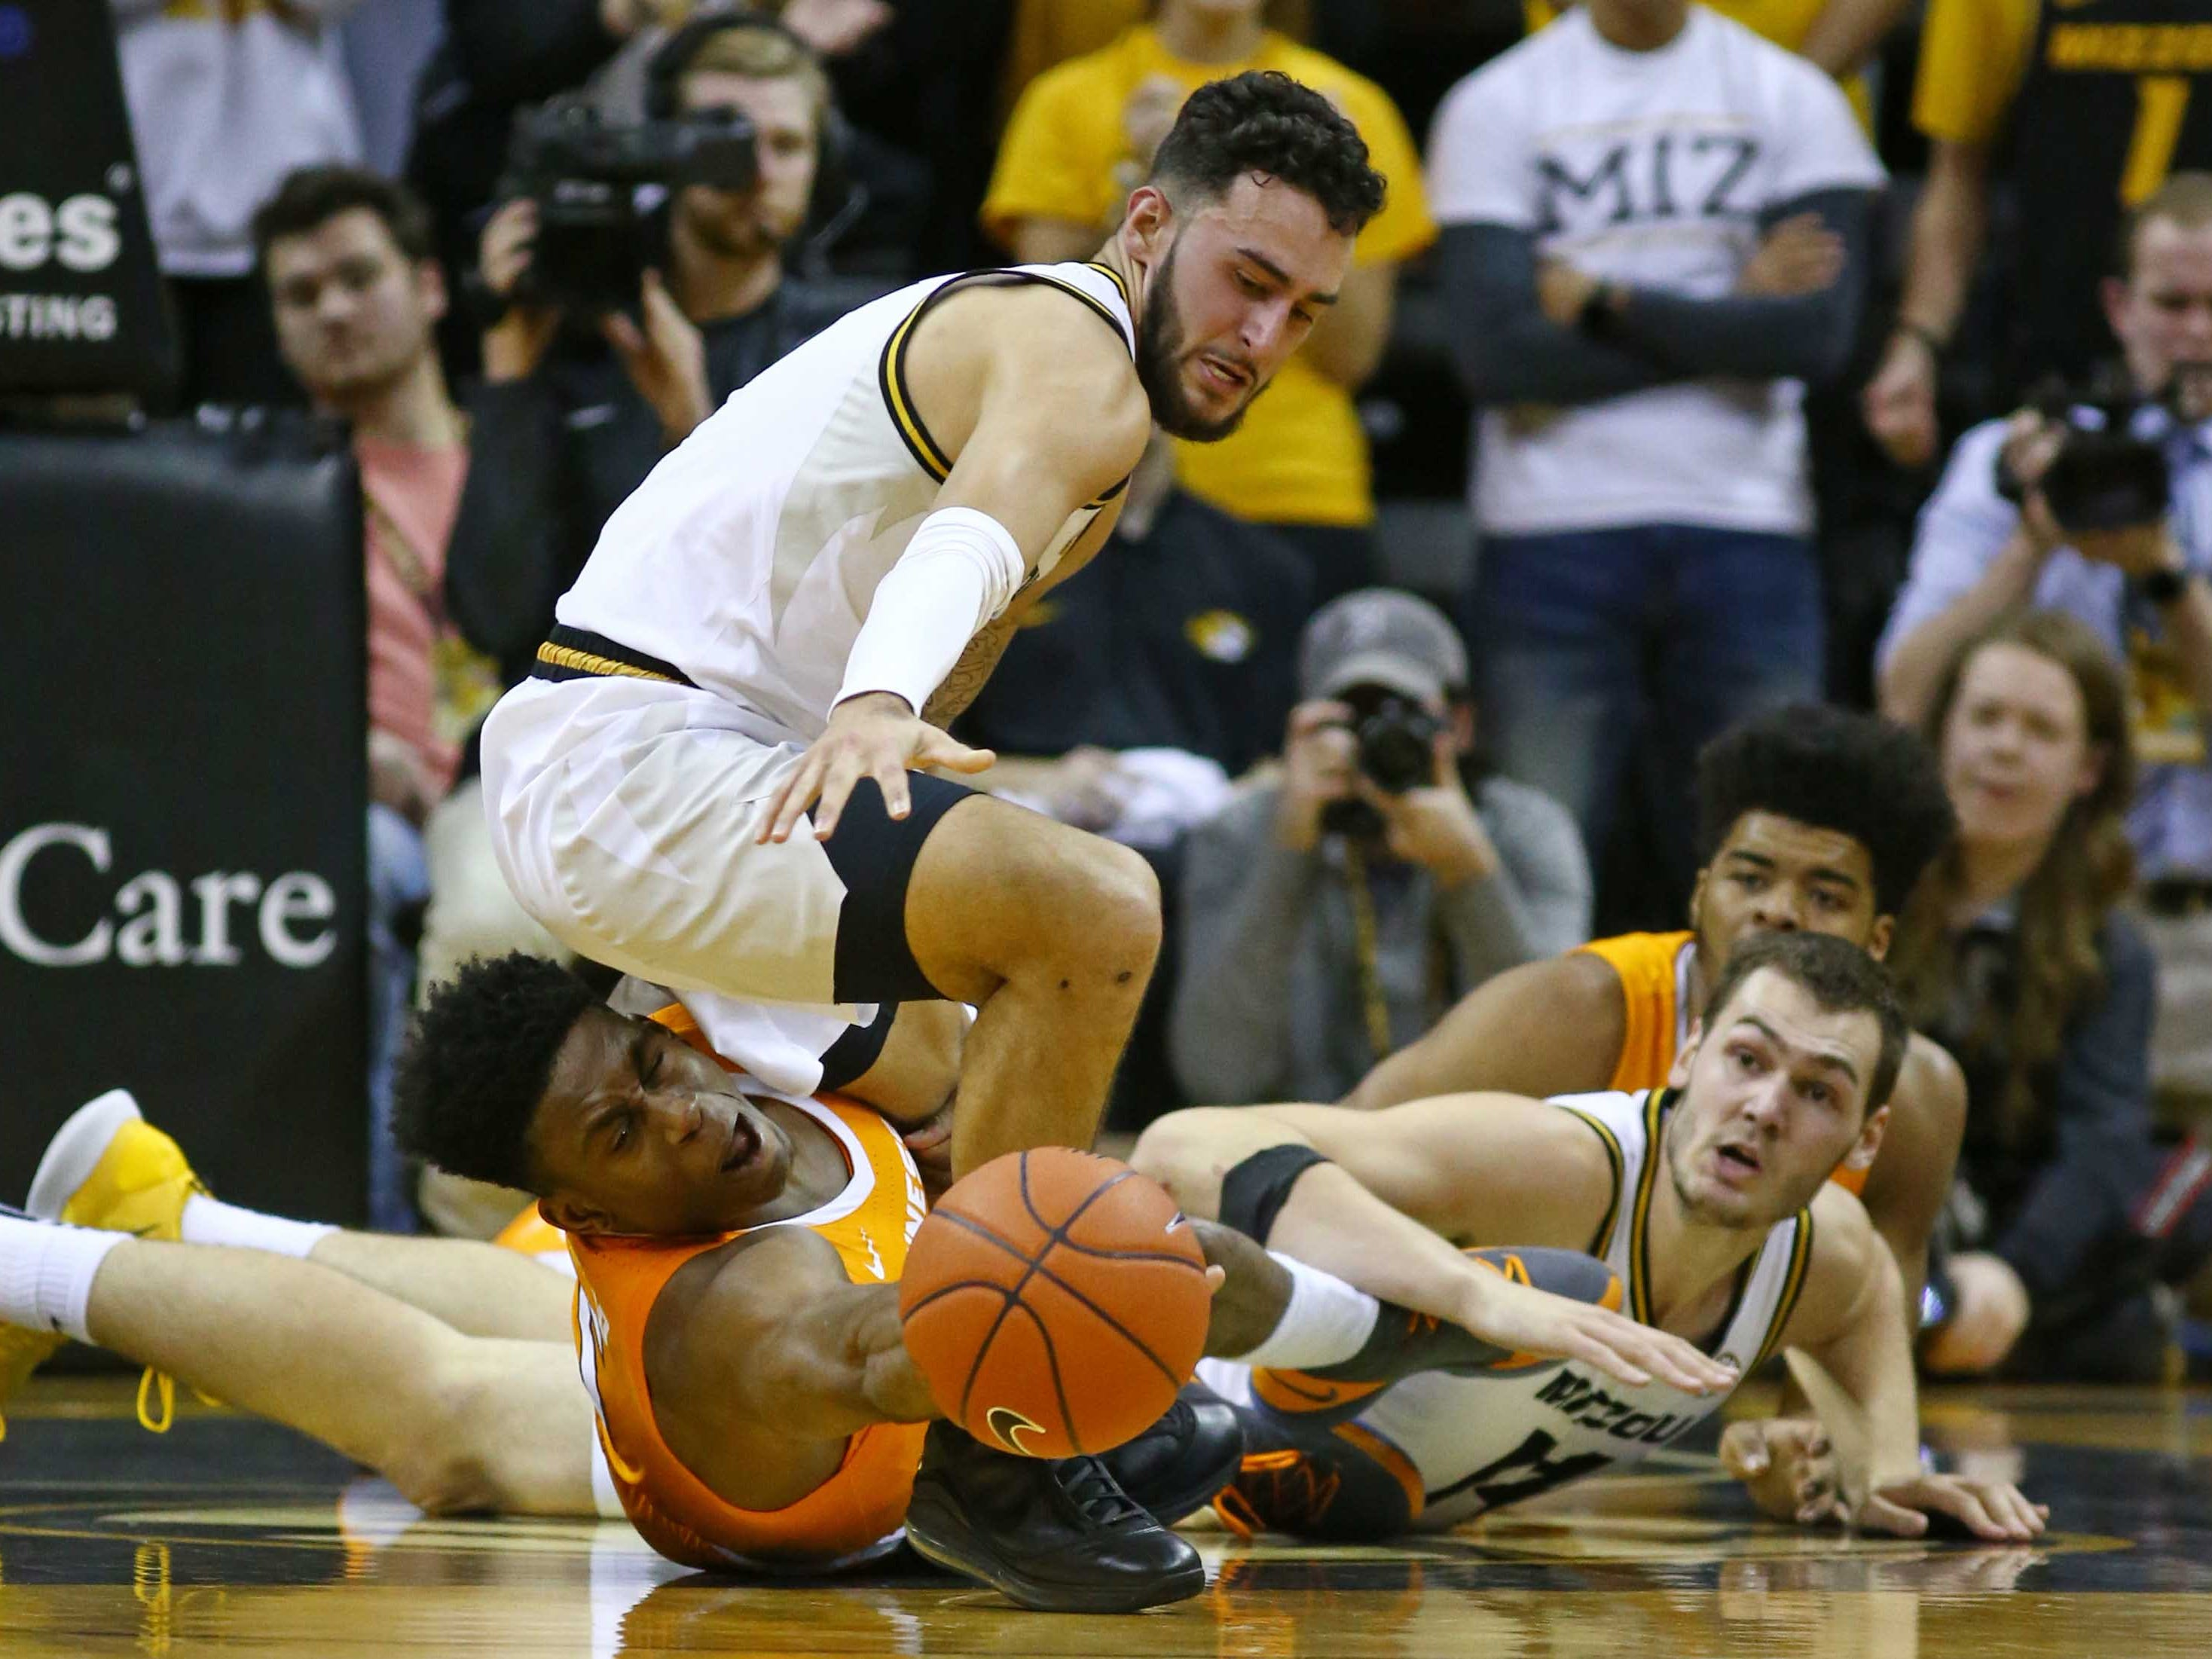 Missouri Tigers guard Jordan Geist (15) and forward Reed Nikko (14) go after a loose ball against Tennessee Volunteers guard Admiral Schofield (5) and forward Derrick Walker (15) in the first half at Mizzou Arena.